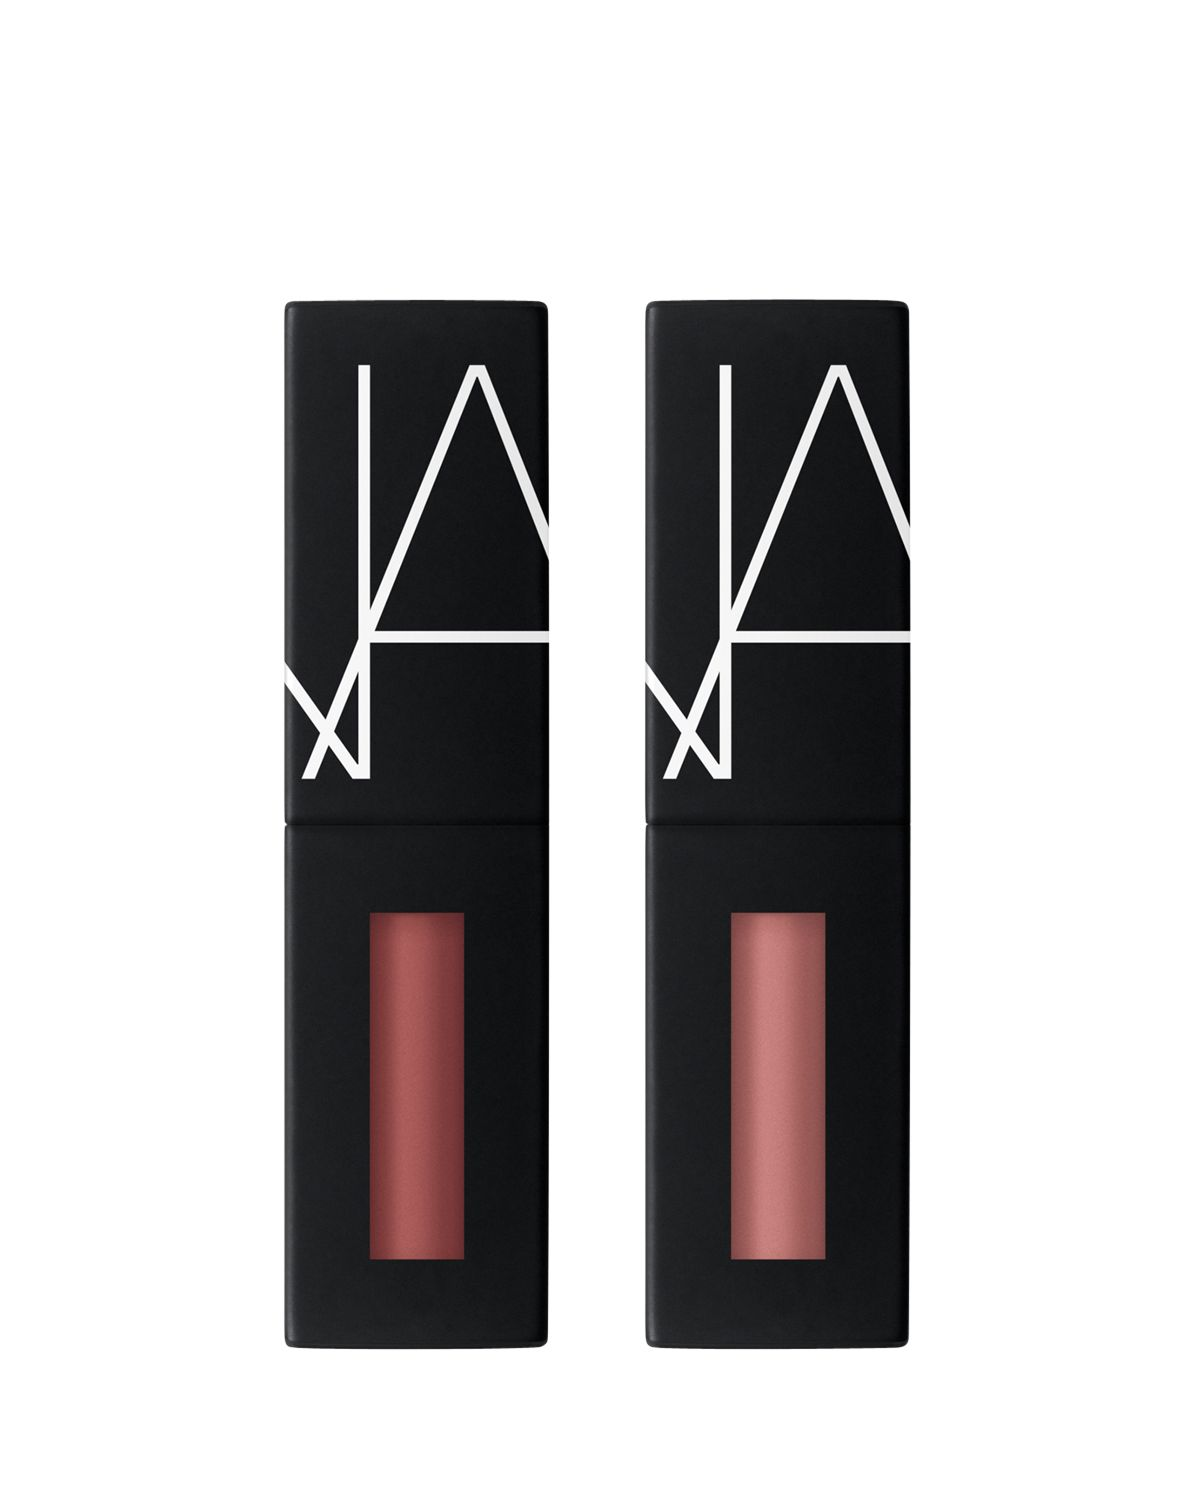 The Nar Sissist Power Pack Lip Kit by Nars